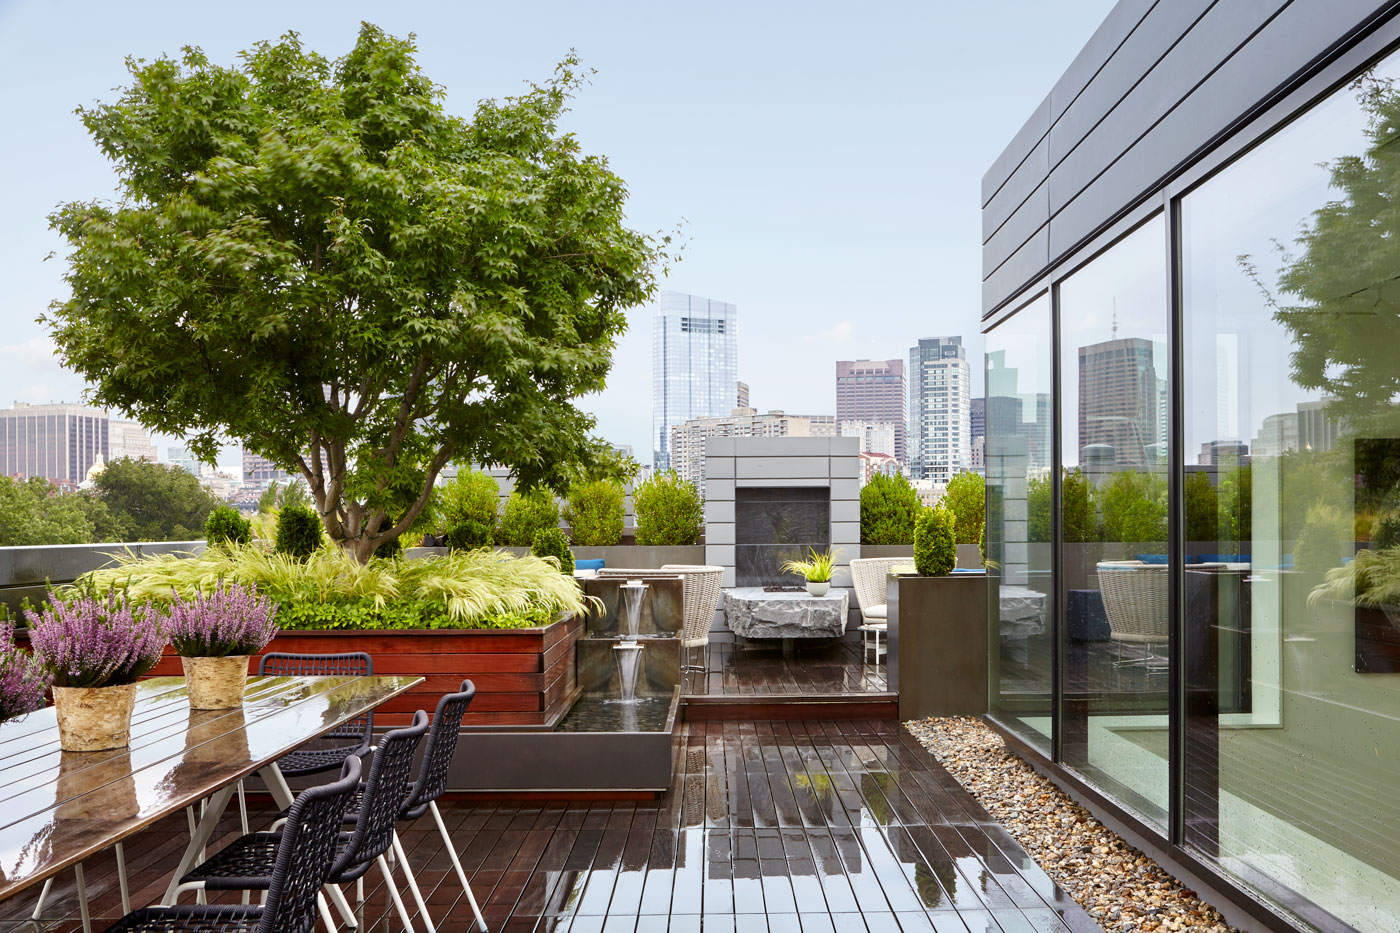 Roof deck with views of the city